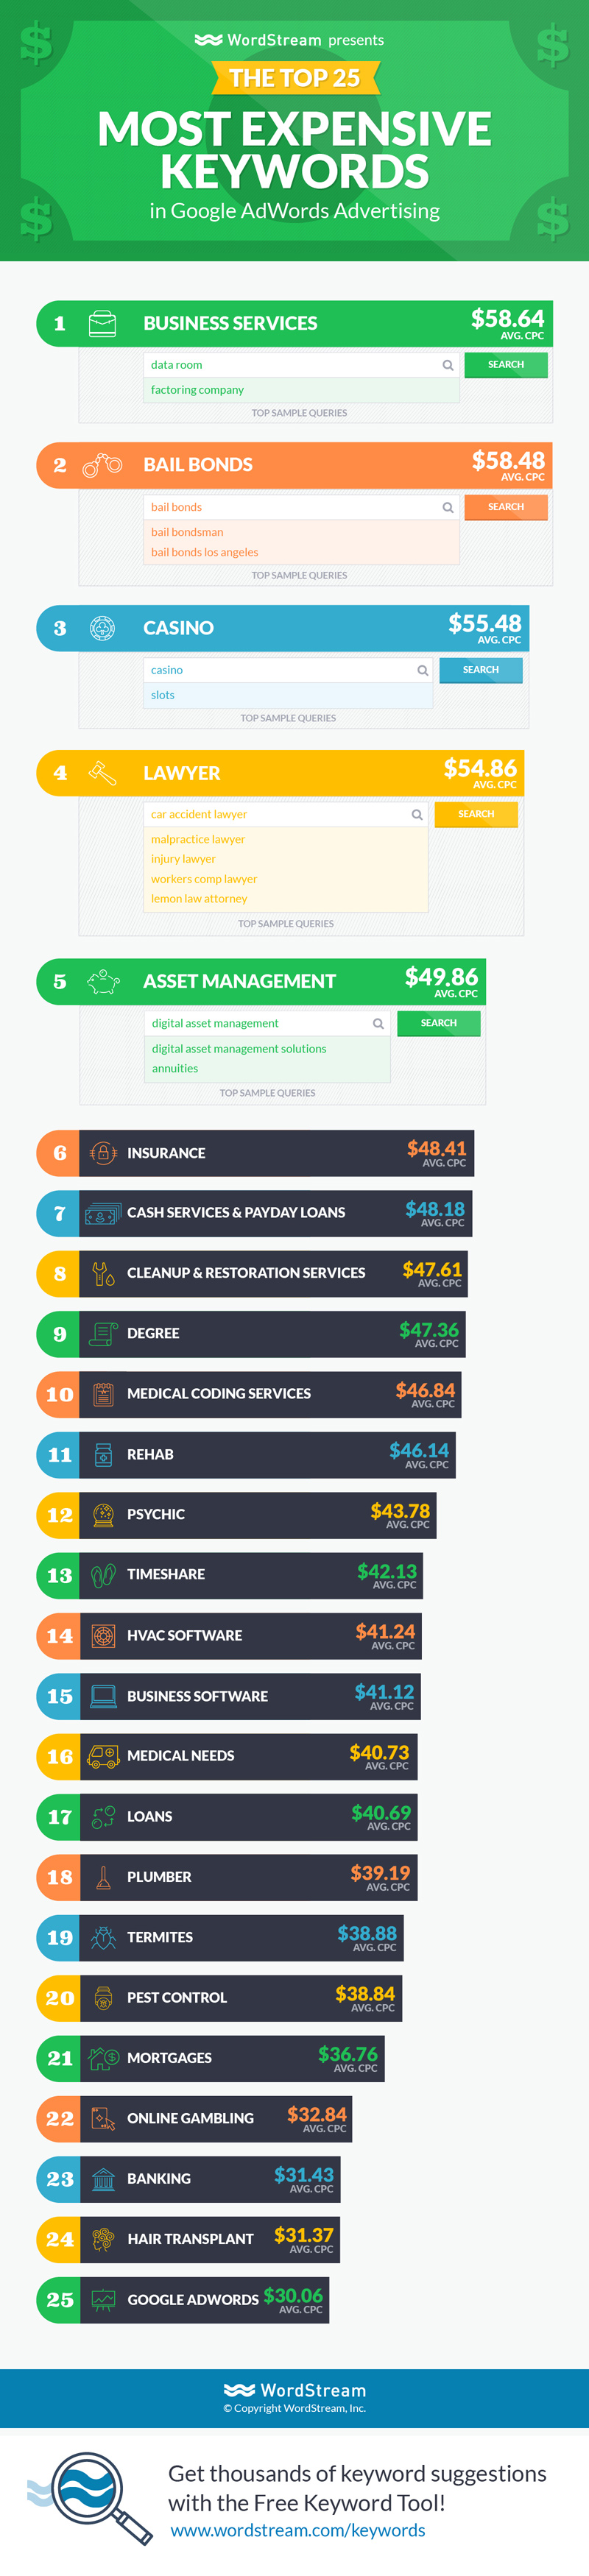 Most expensive keywords in Adwords